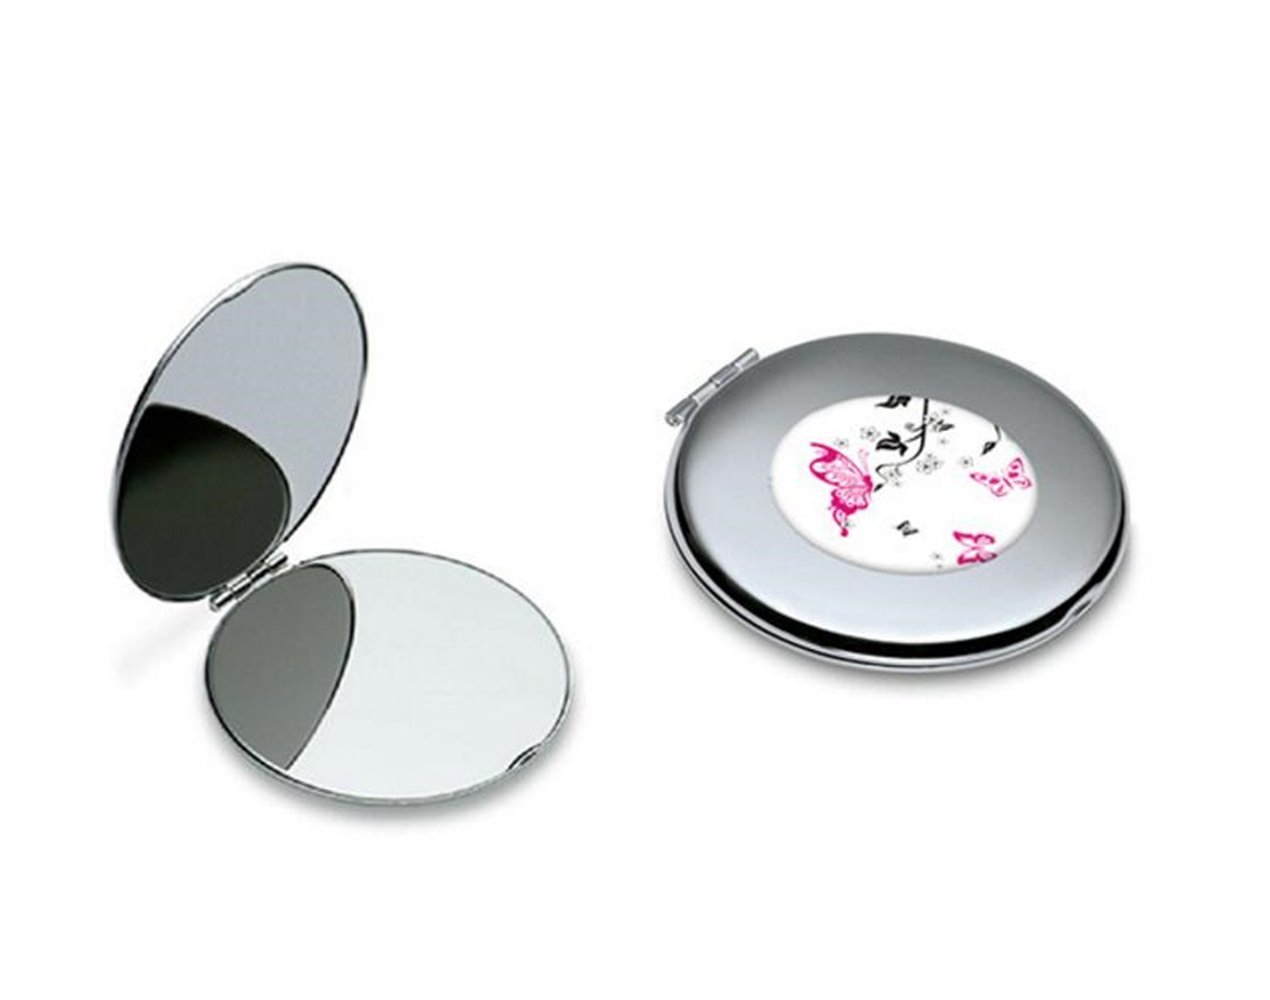 Yingealy Childrens Mirror Mini Butterfly Pattern Round Metal Small Glass Mirrors Circles for Crafts Decoration Cosmetic Accessory by Yingealy (Image #4)